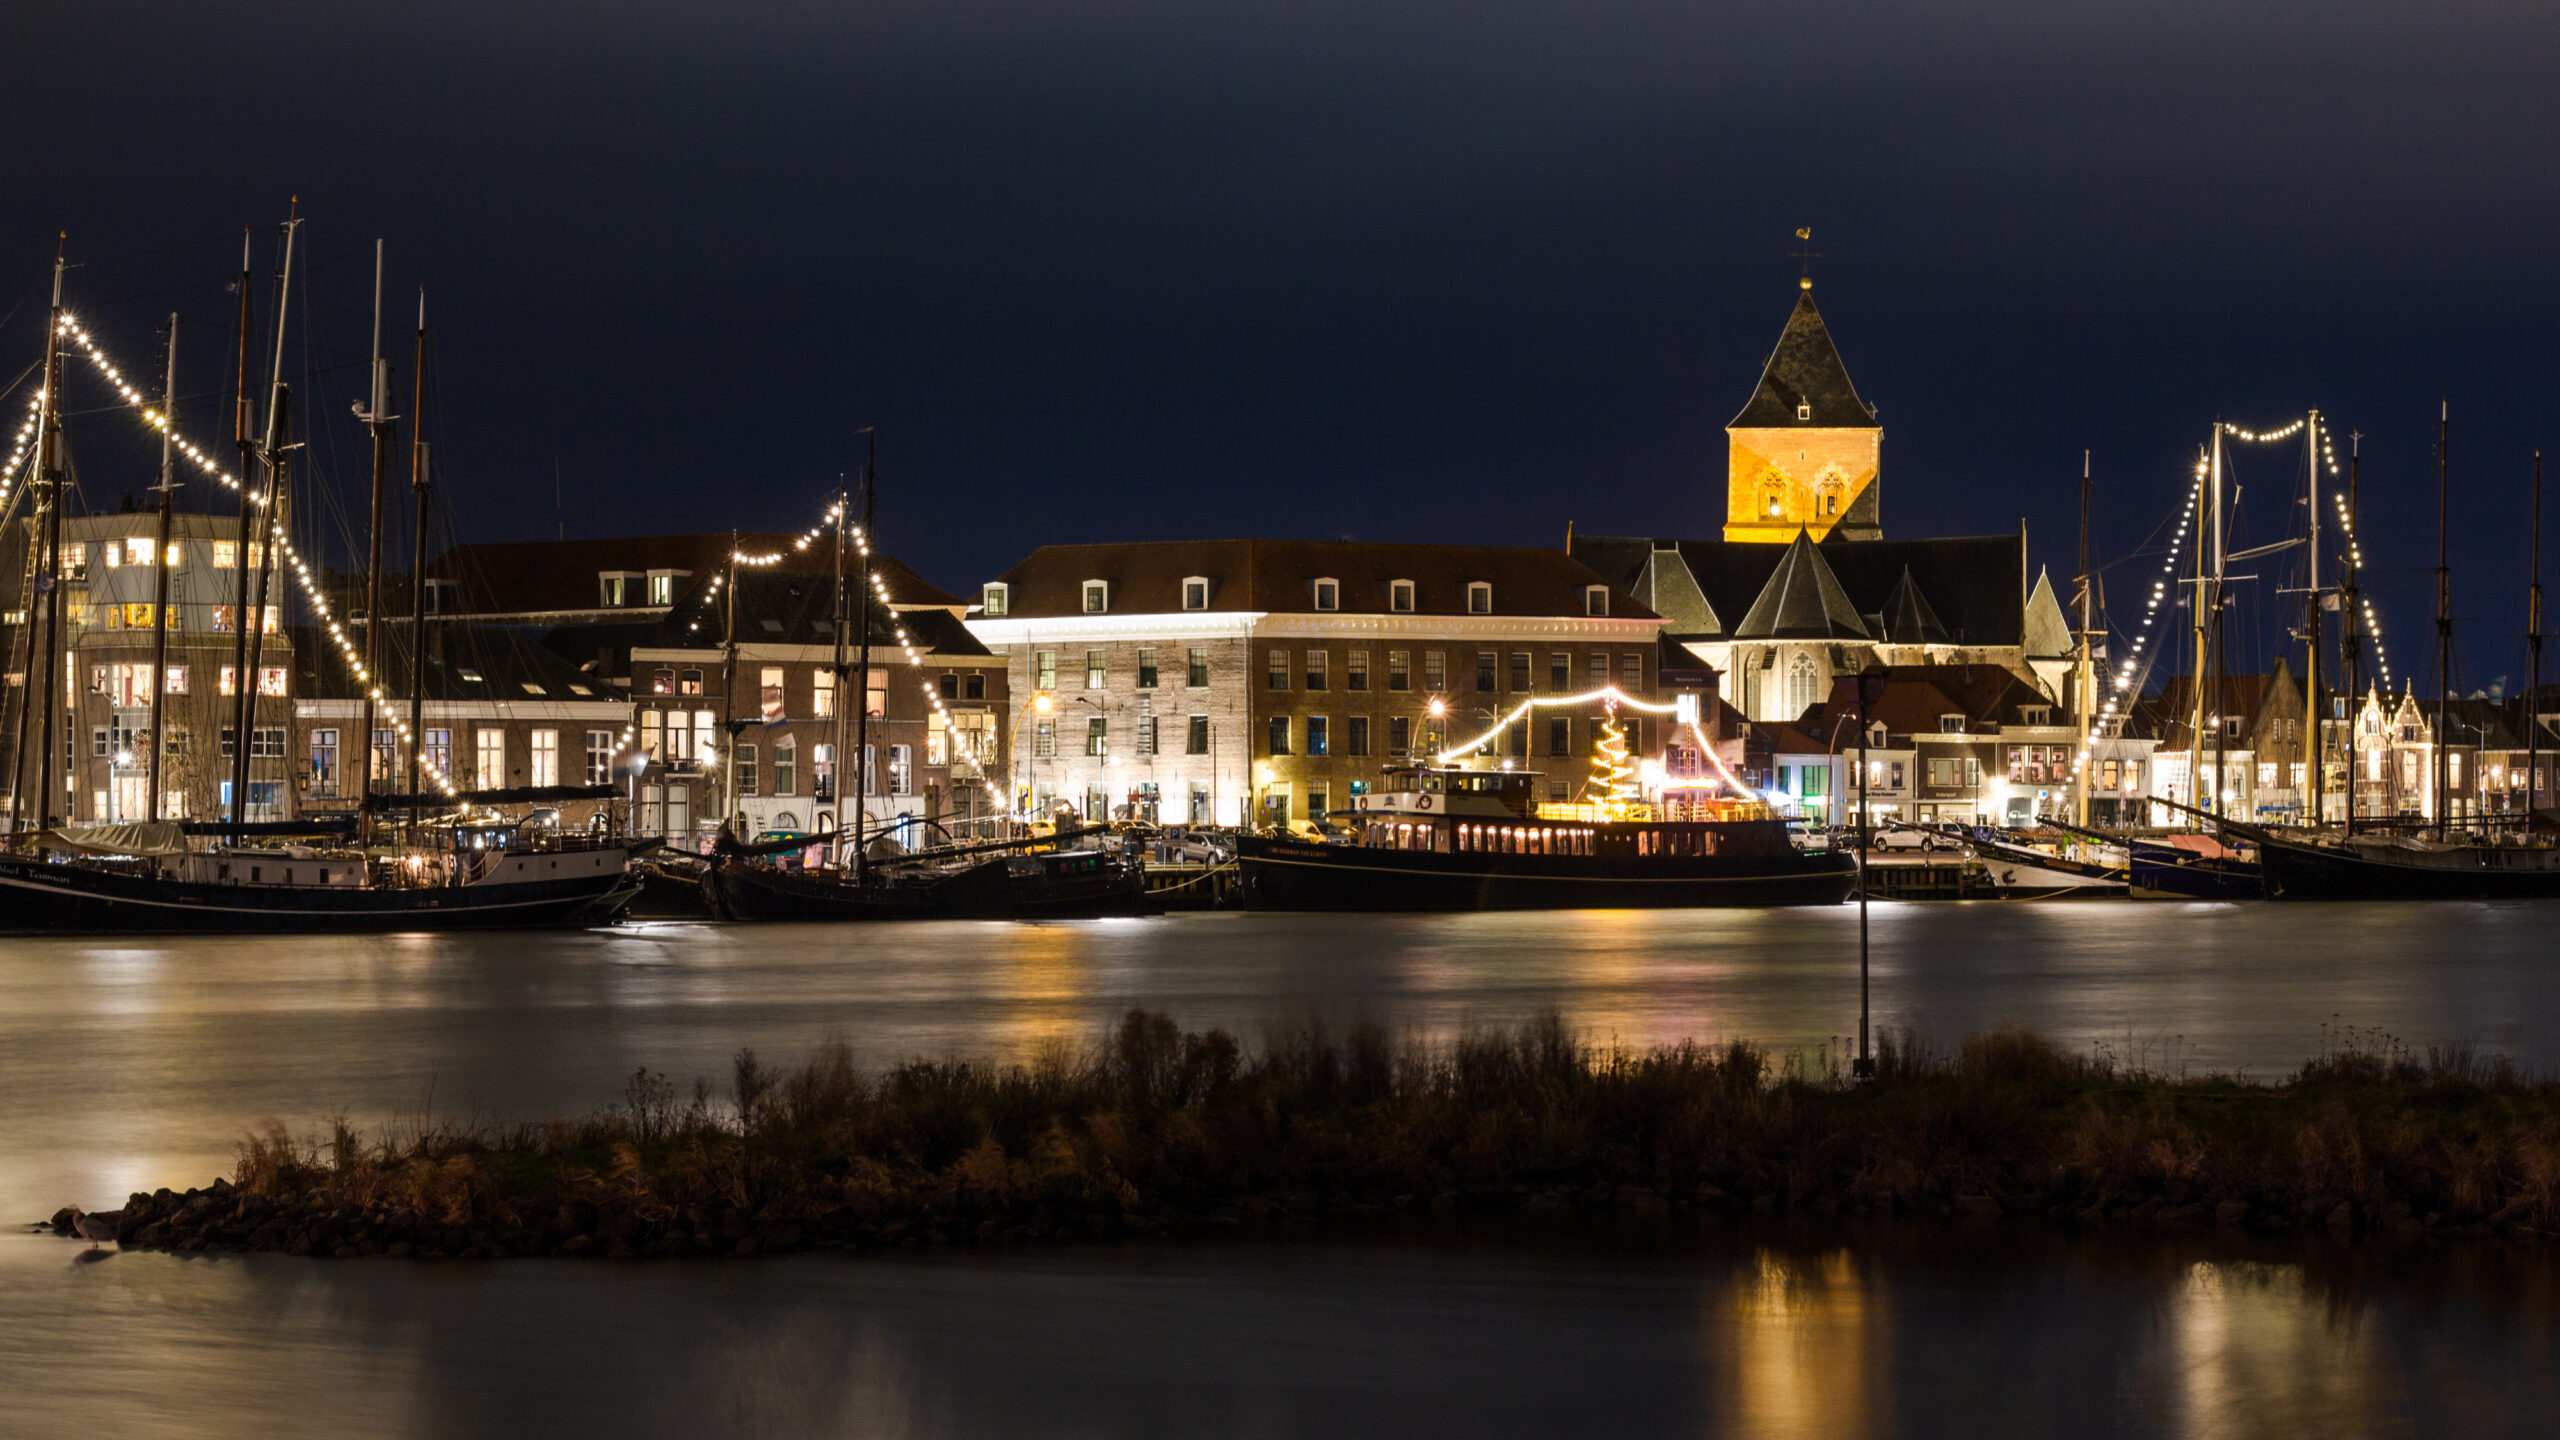 Skyline,Of,The,City,Kampen,In,The,Netherlands